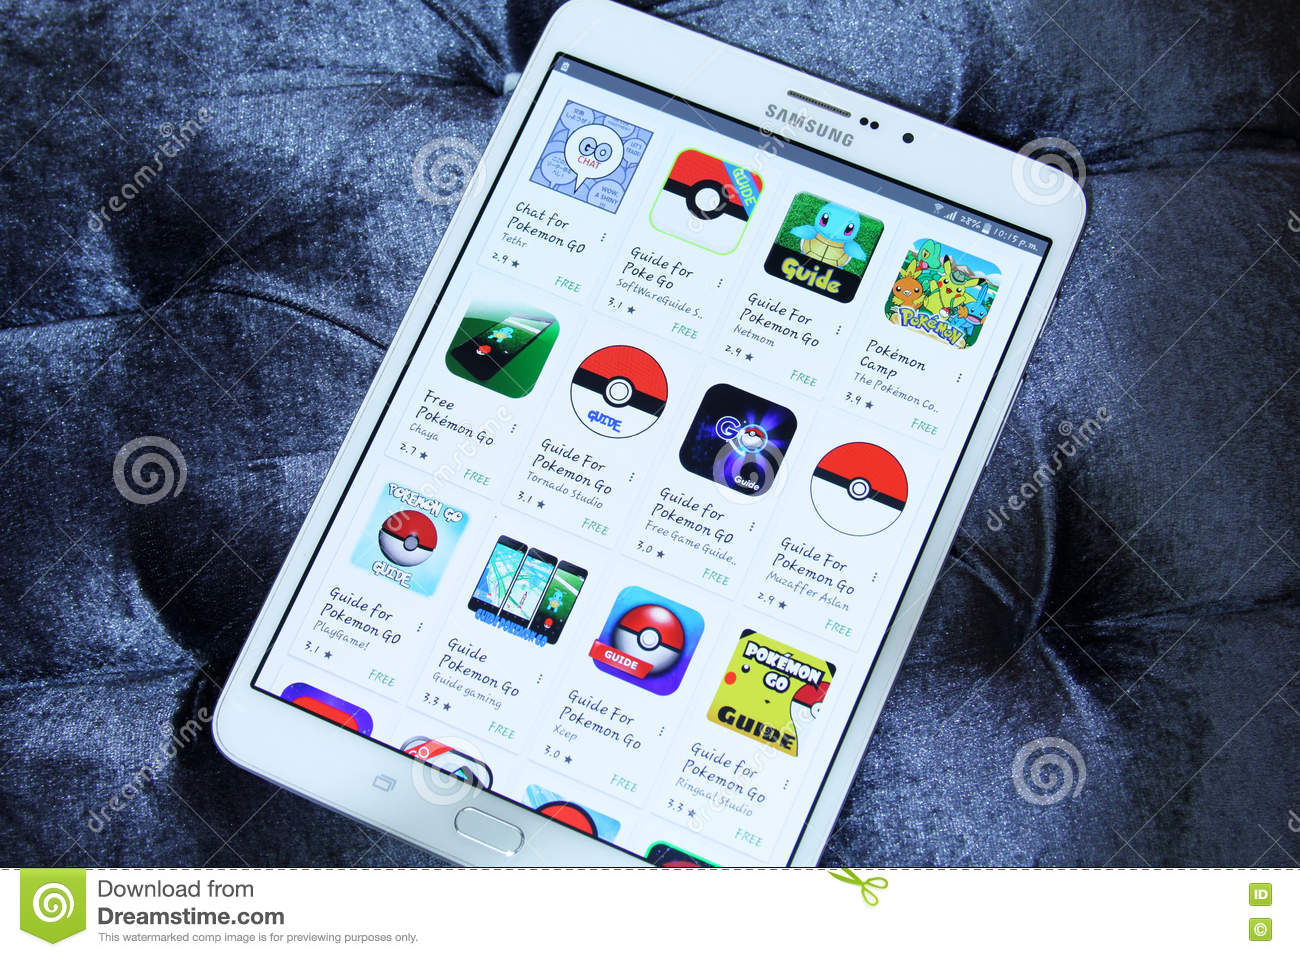 pokemon go apps on google play editorial stock photo - image: 74678458